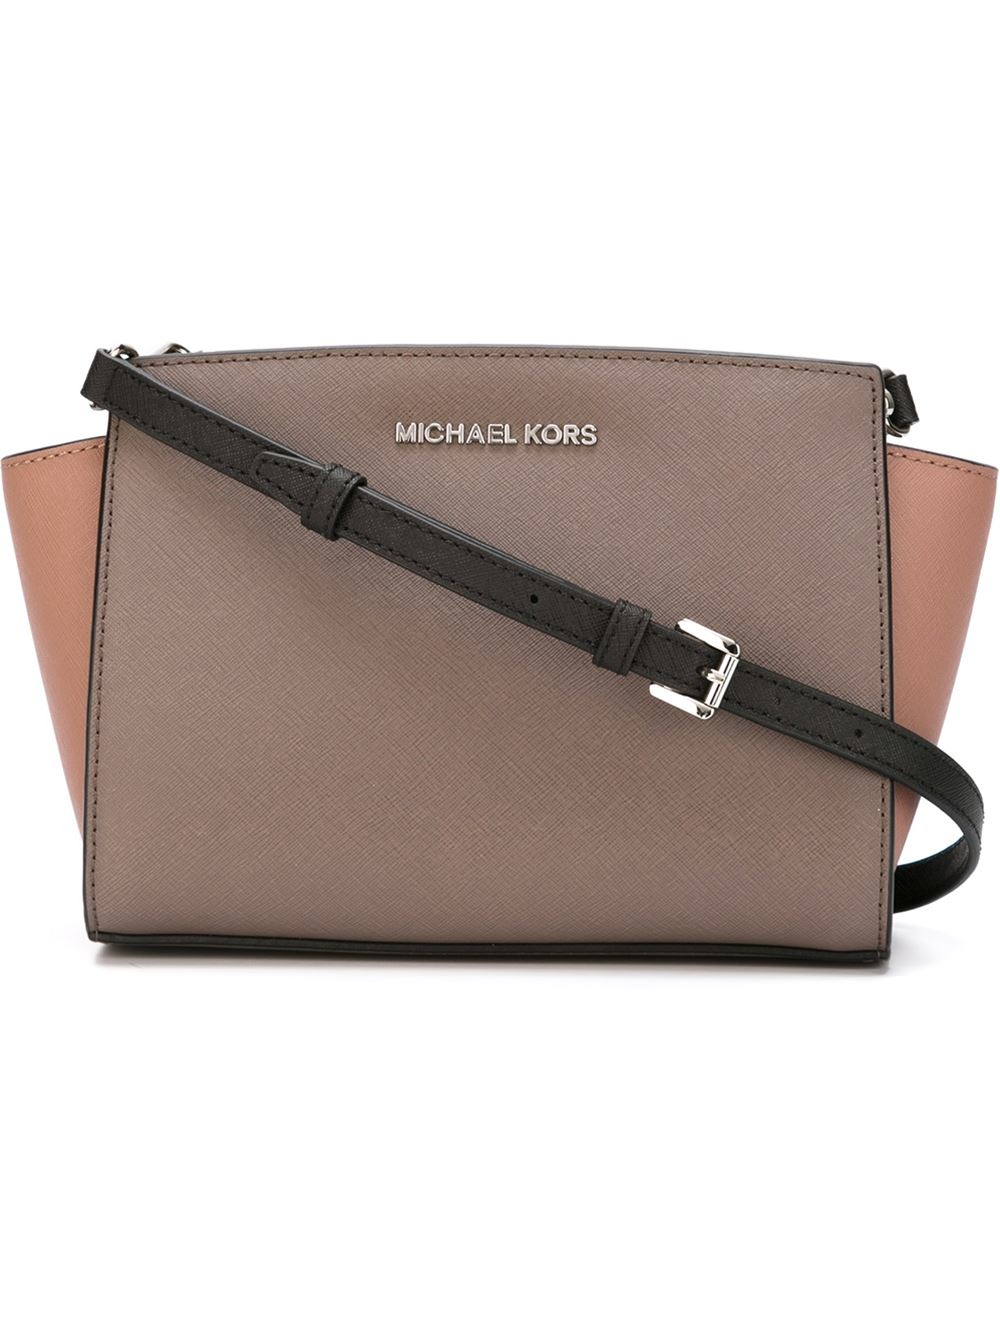 72393d1988e2 Gallery. Previously sold at: Farfetch · Women's Michael By Michael Kors  Selma